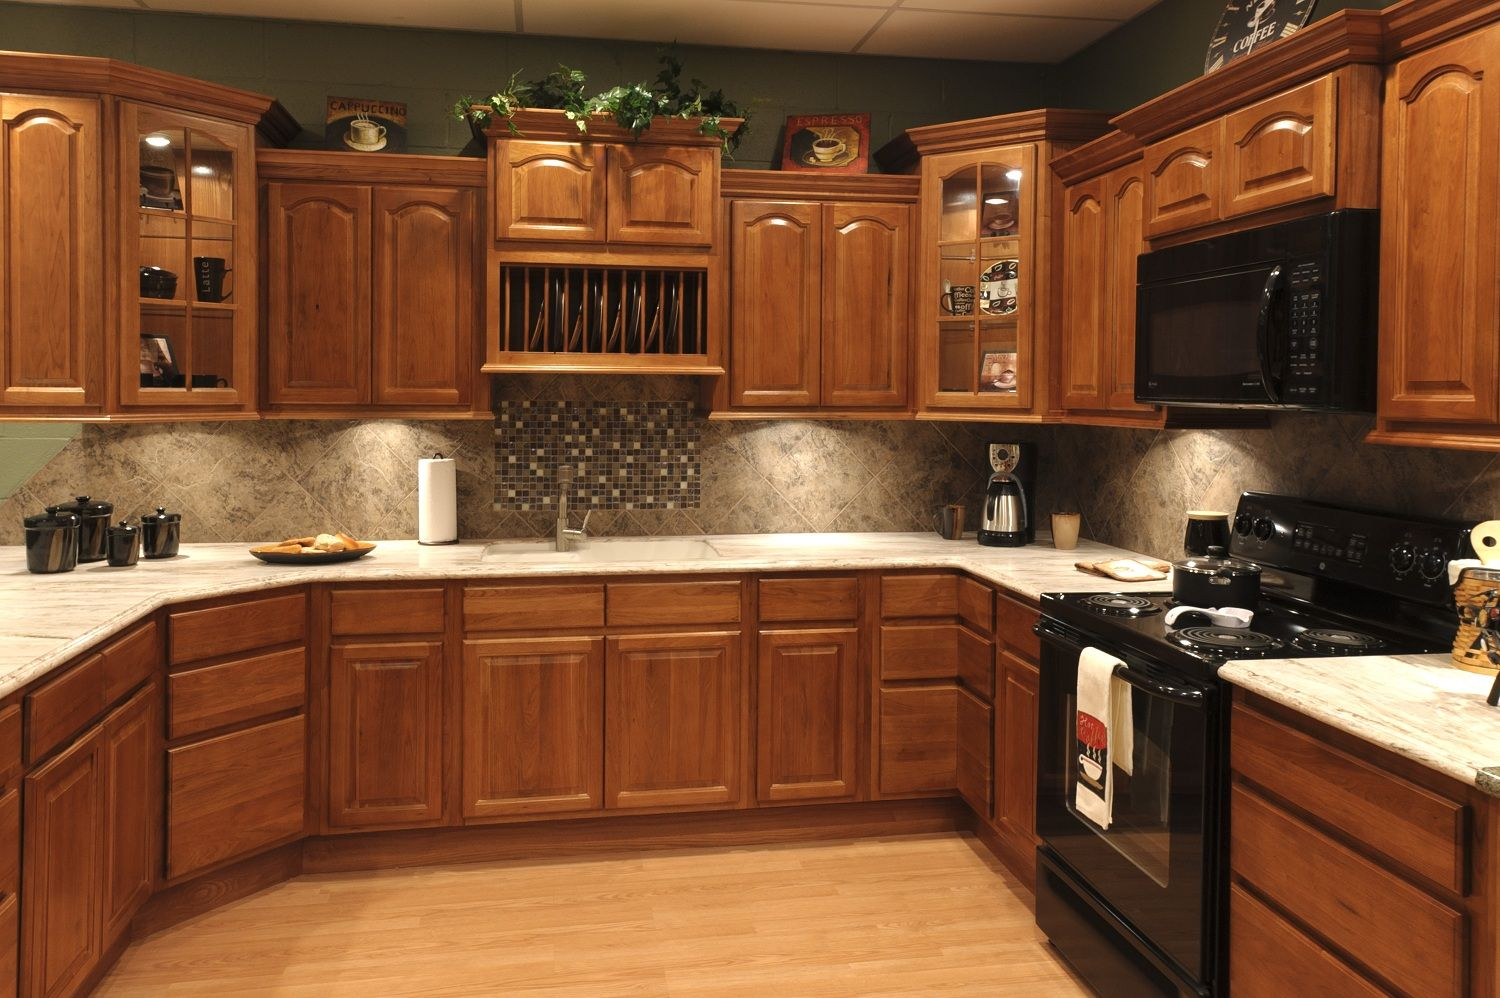 Beautiful Kitchen Cabinets Windy Hill Hardwoods Beautiful Jmark Kitchen Cabinets I Shop Blogz